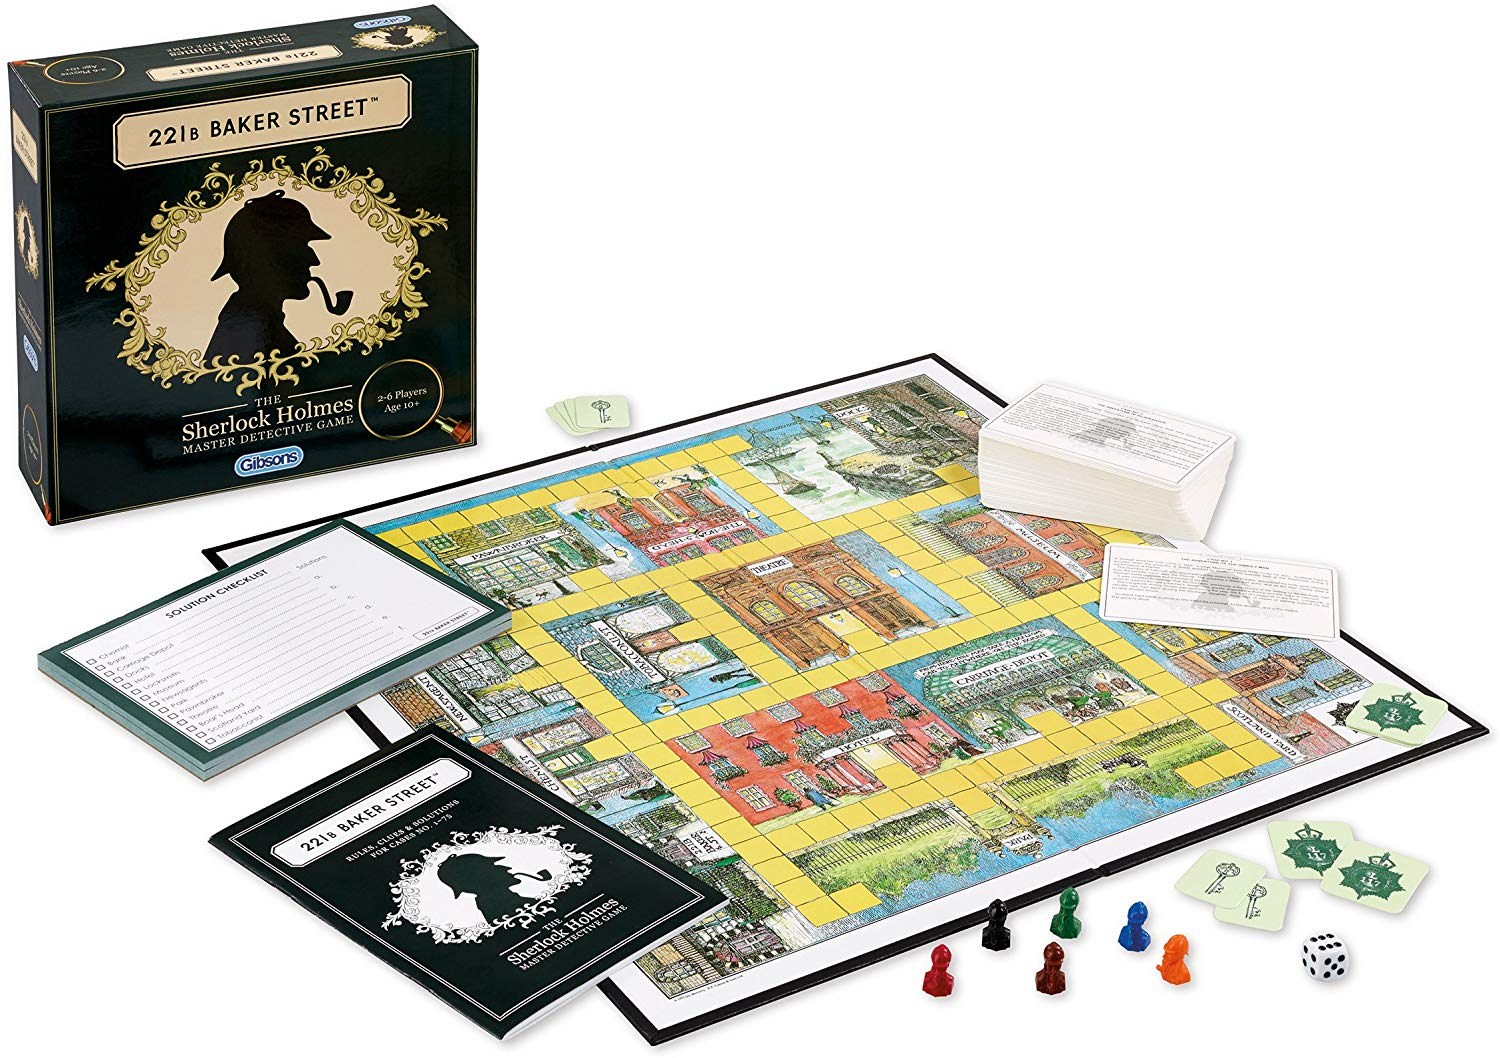 Save £8.52 on 221B Baker Street Game